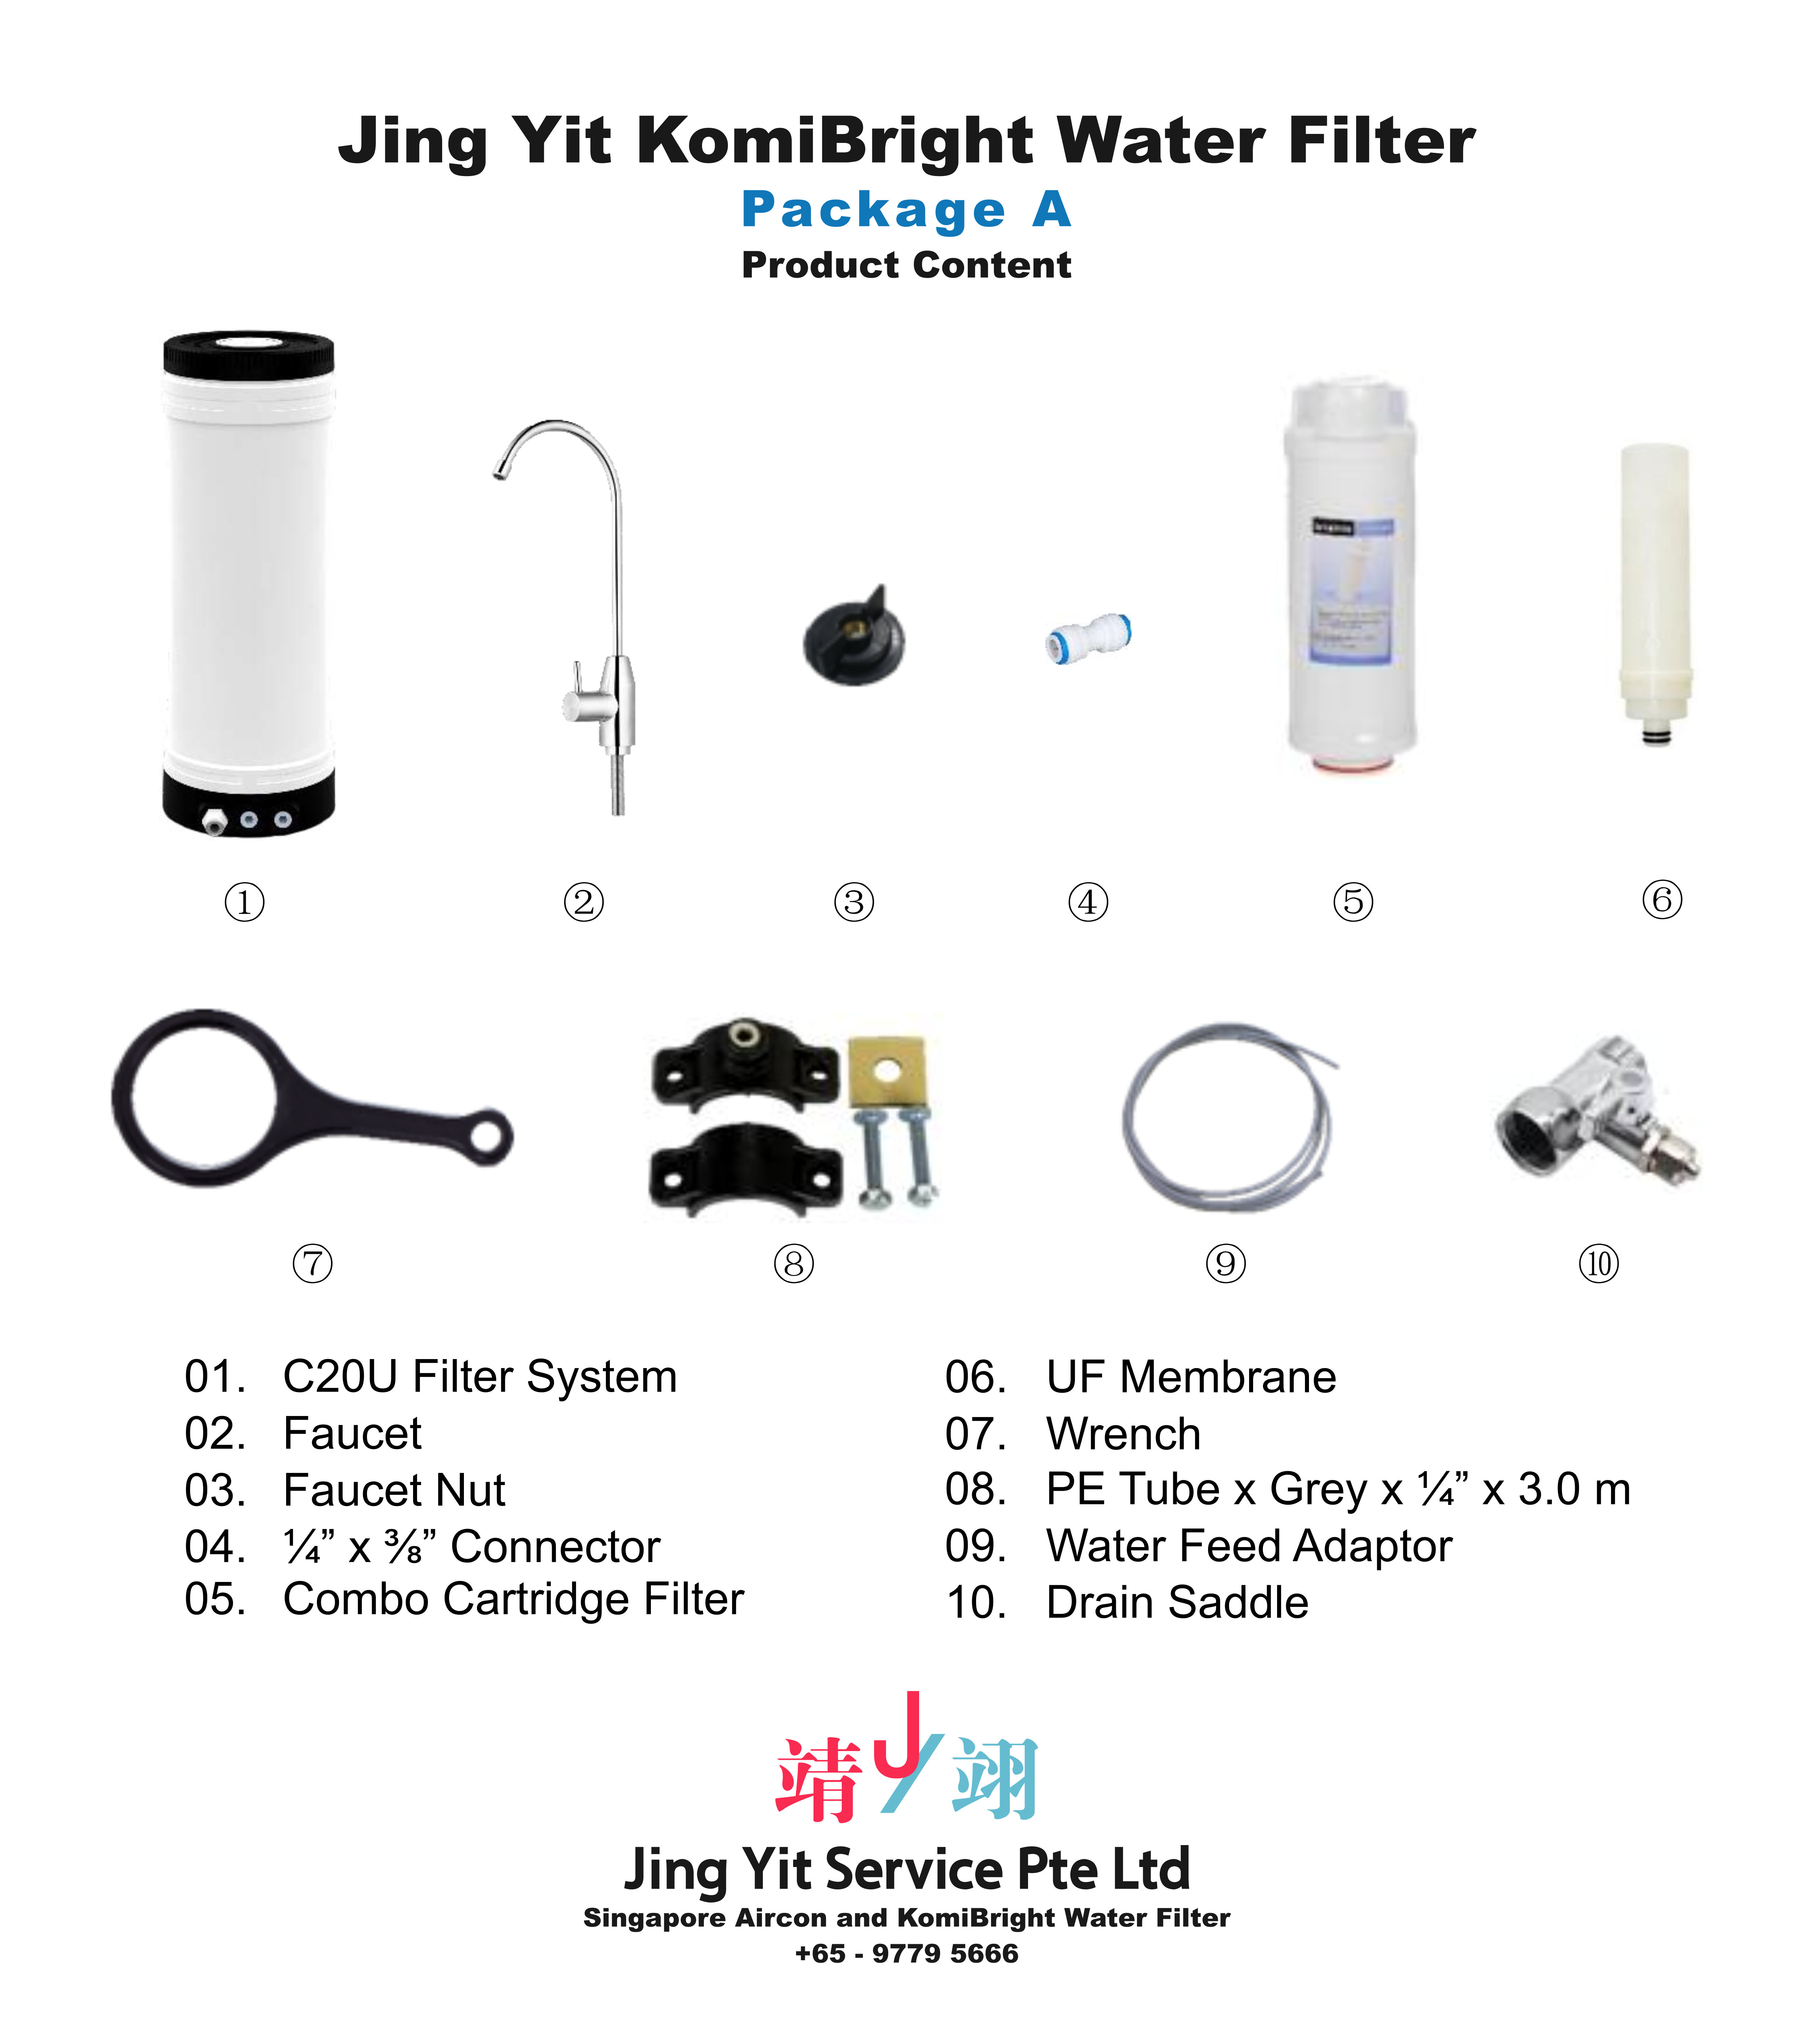 Jing Yit KomiBright Water Filter Singapore Reverse Osmosis Water Purifier Singapore Water Filter Malaysia Komi Bright Water Filter Package A A02